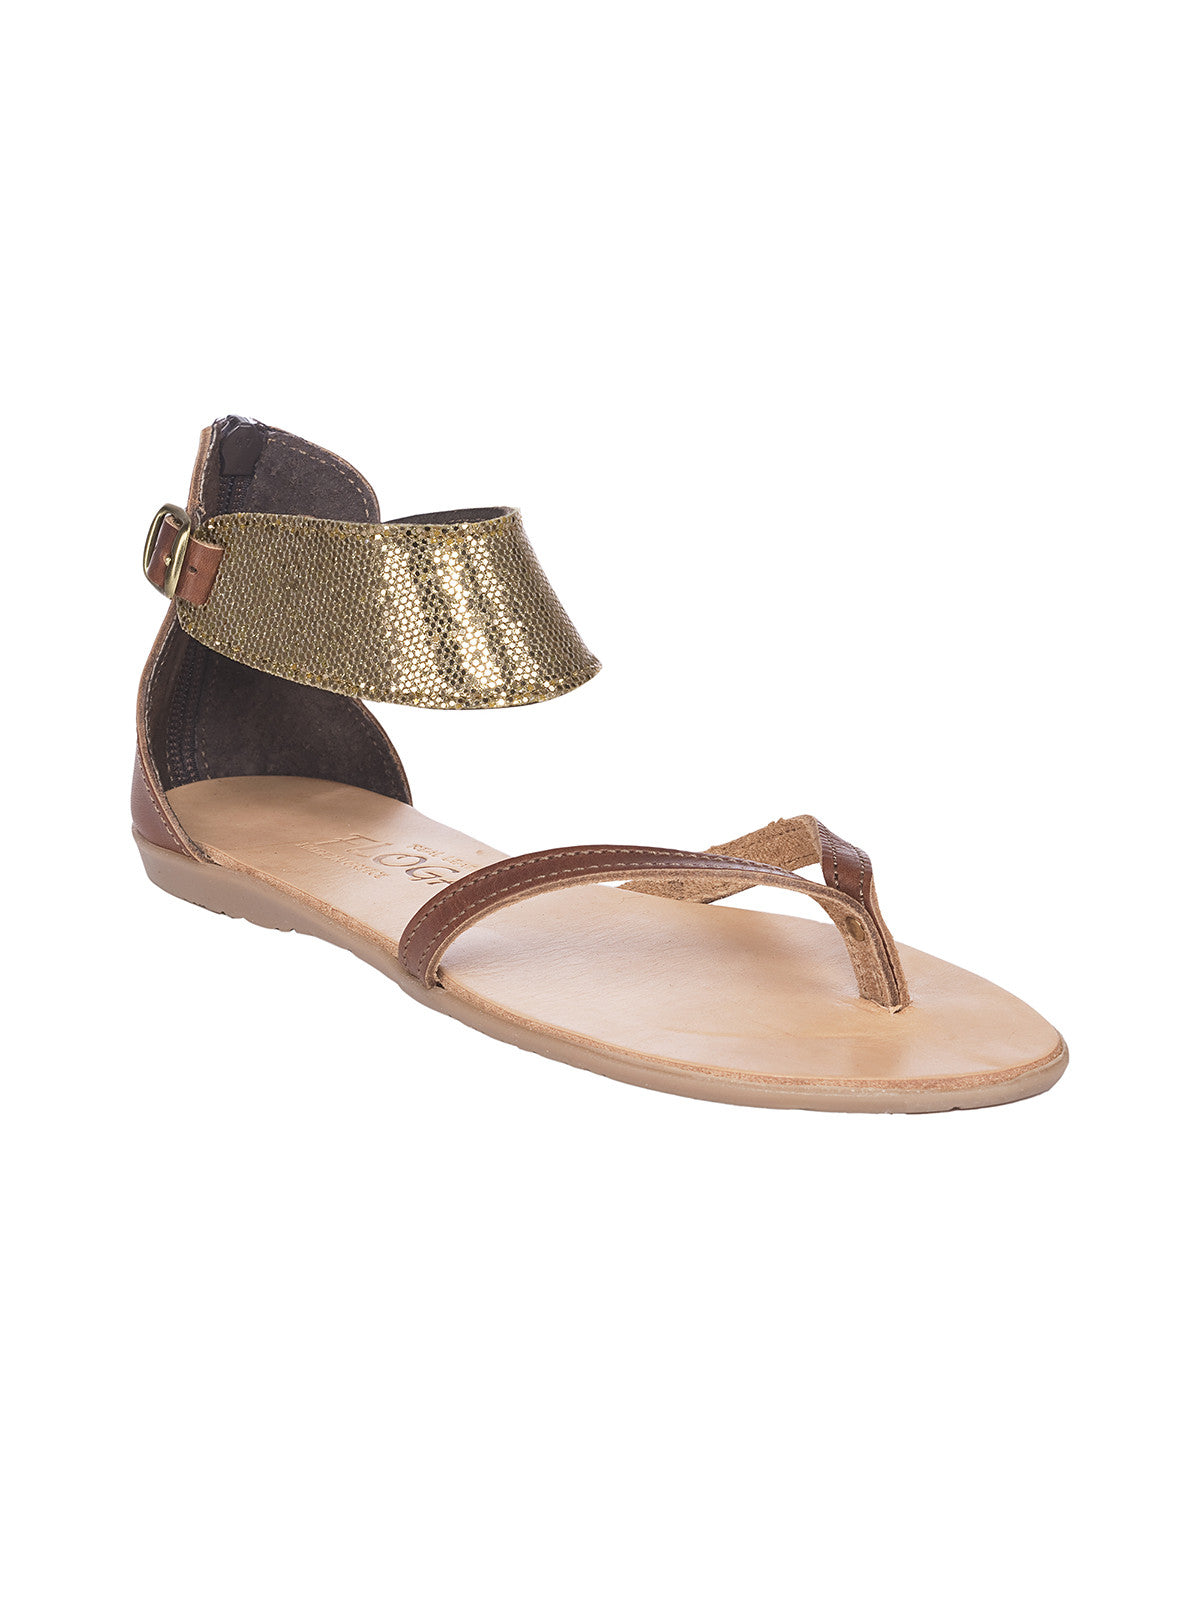 Melpomeni Greek Sandals